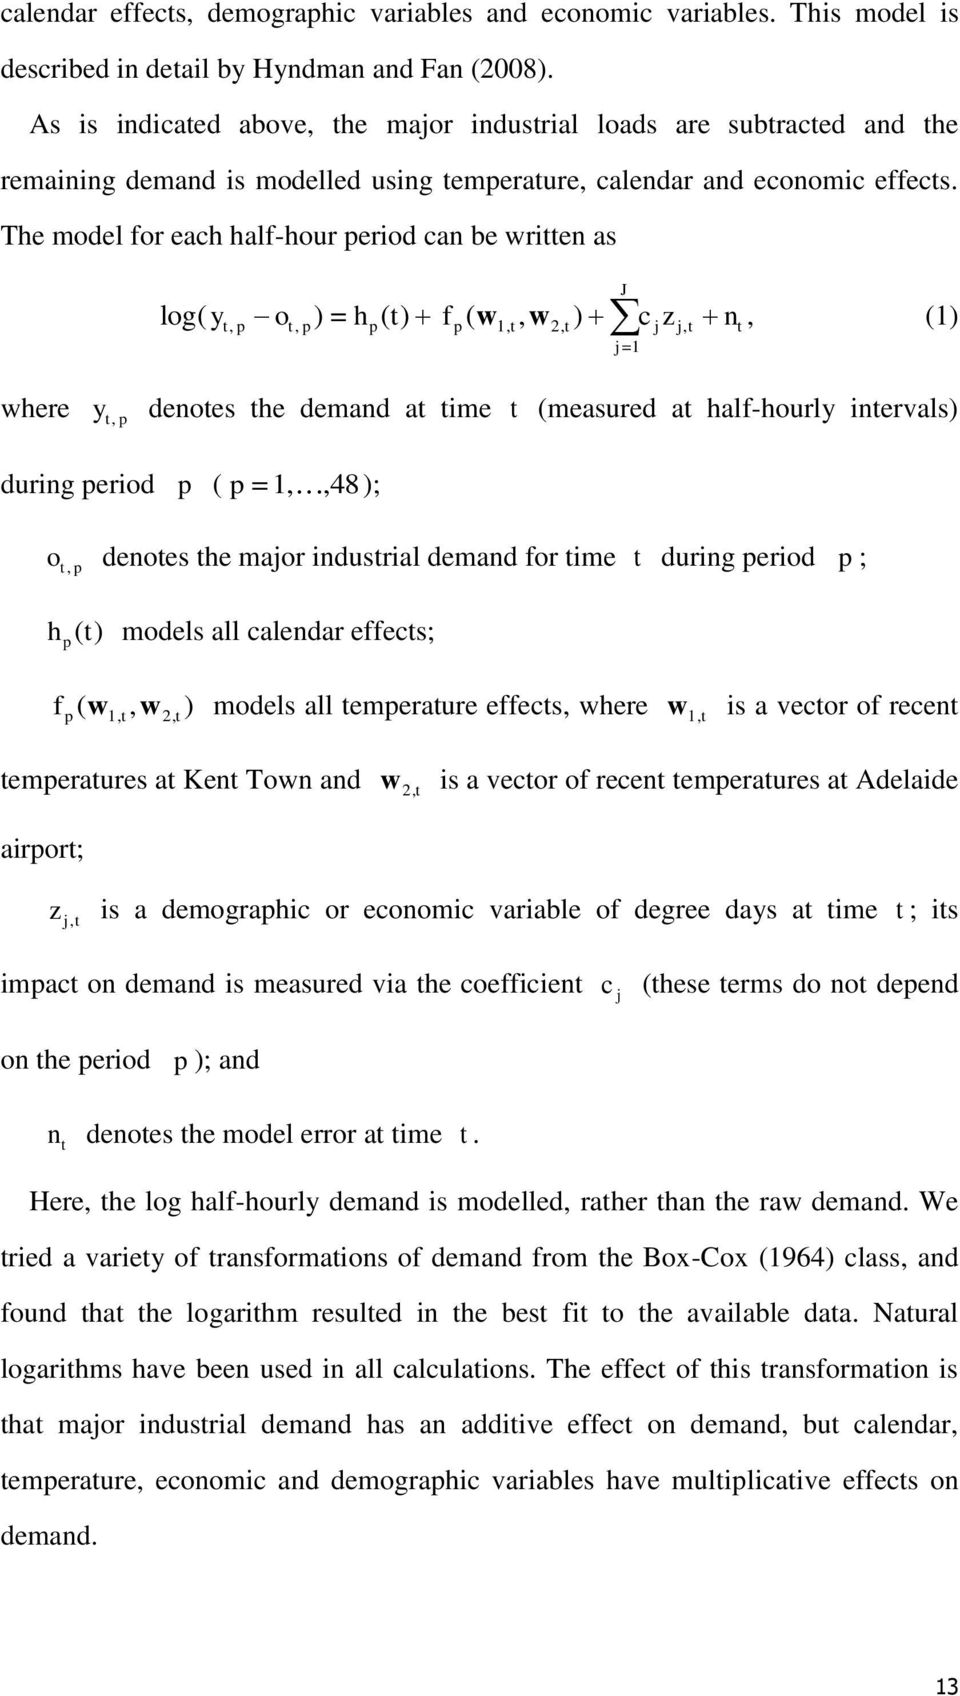 The model for each half-hour period can be written as log( y J t, p ot, p) = hp( t) f p( 1, t, w2, t ) c jz j, t j=1 w n, (1) t where y, denotes the demand at time t (measured at half-hourly